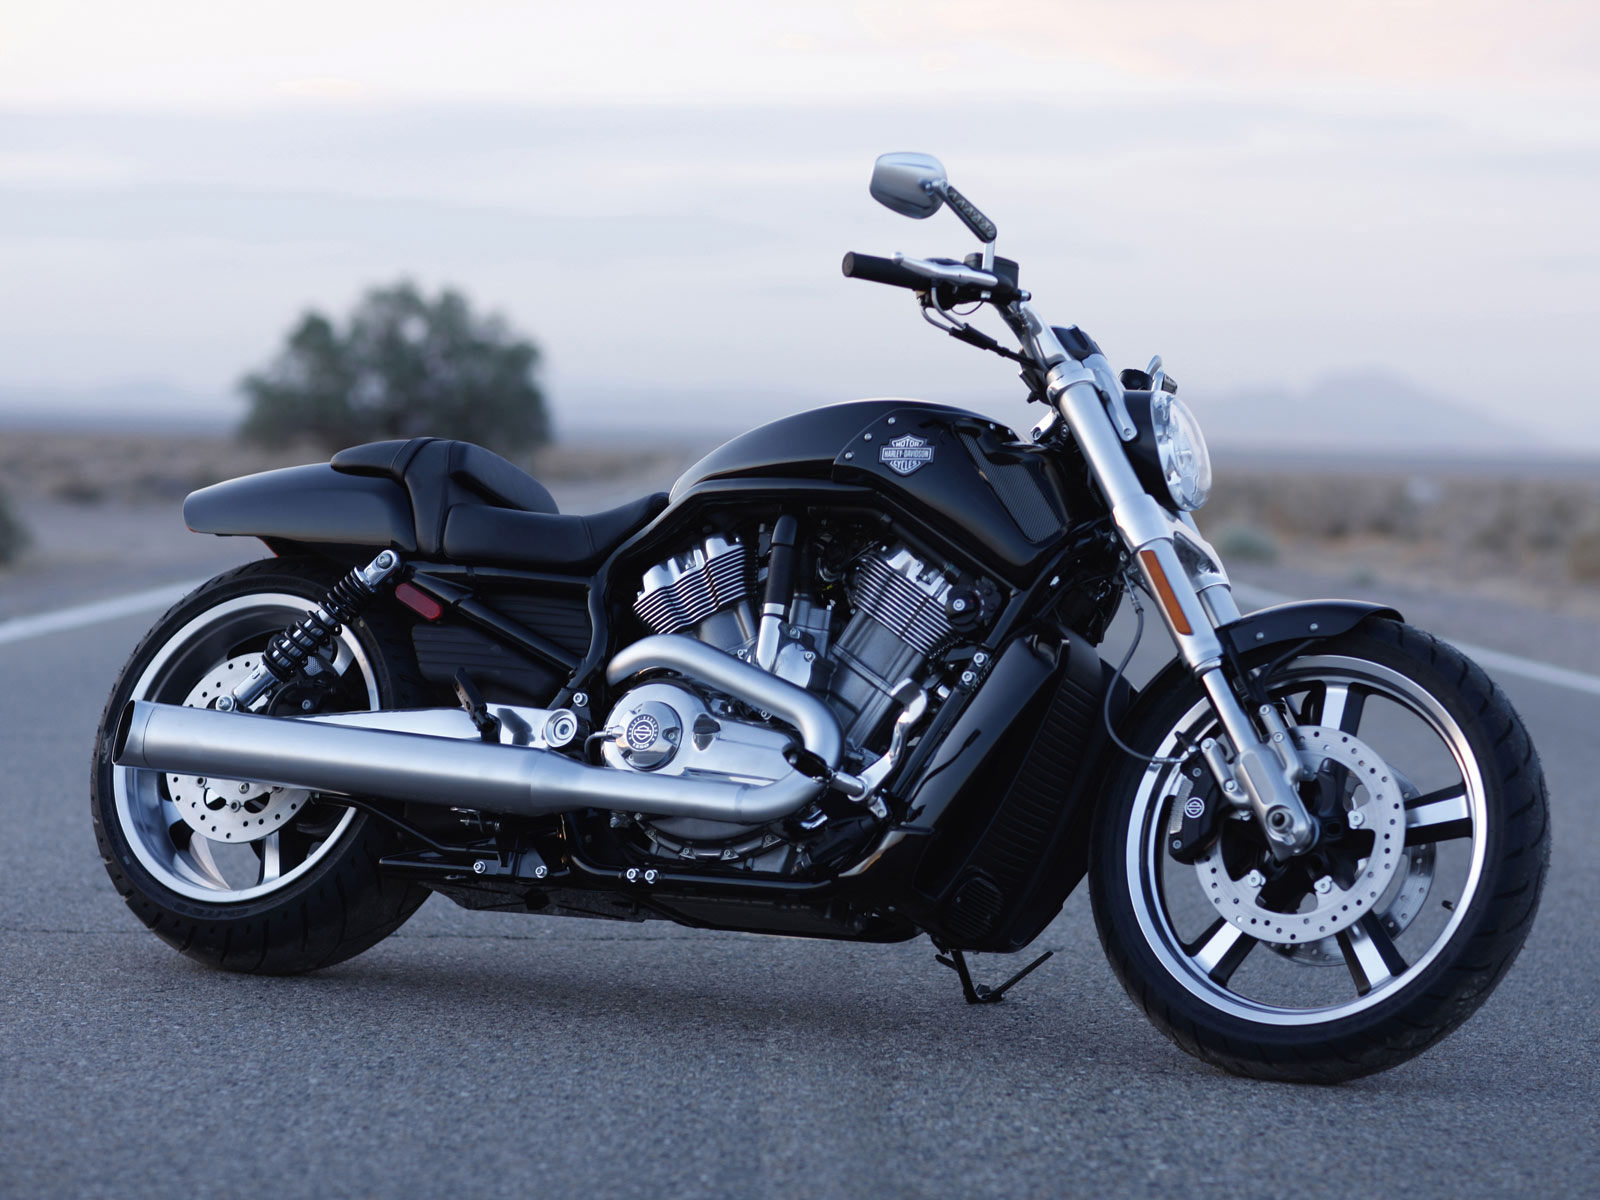 Harley Davidson: HARLEY-DAVIDSON VRSCF V-Rod Muscle (2010) Pictures And Review